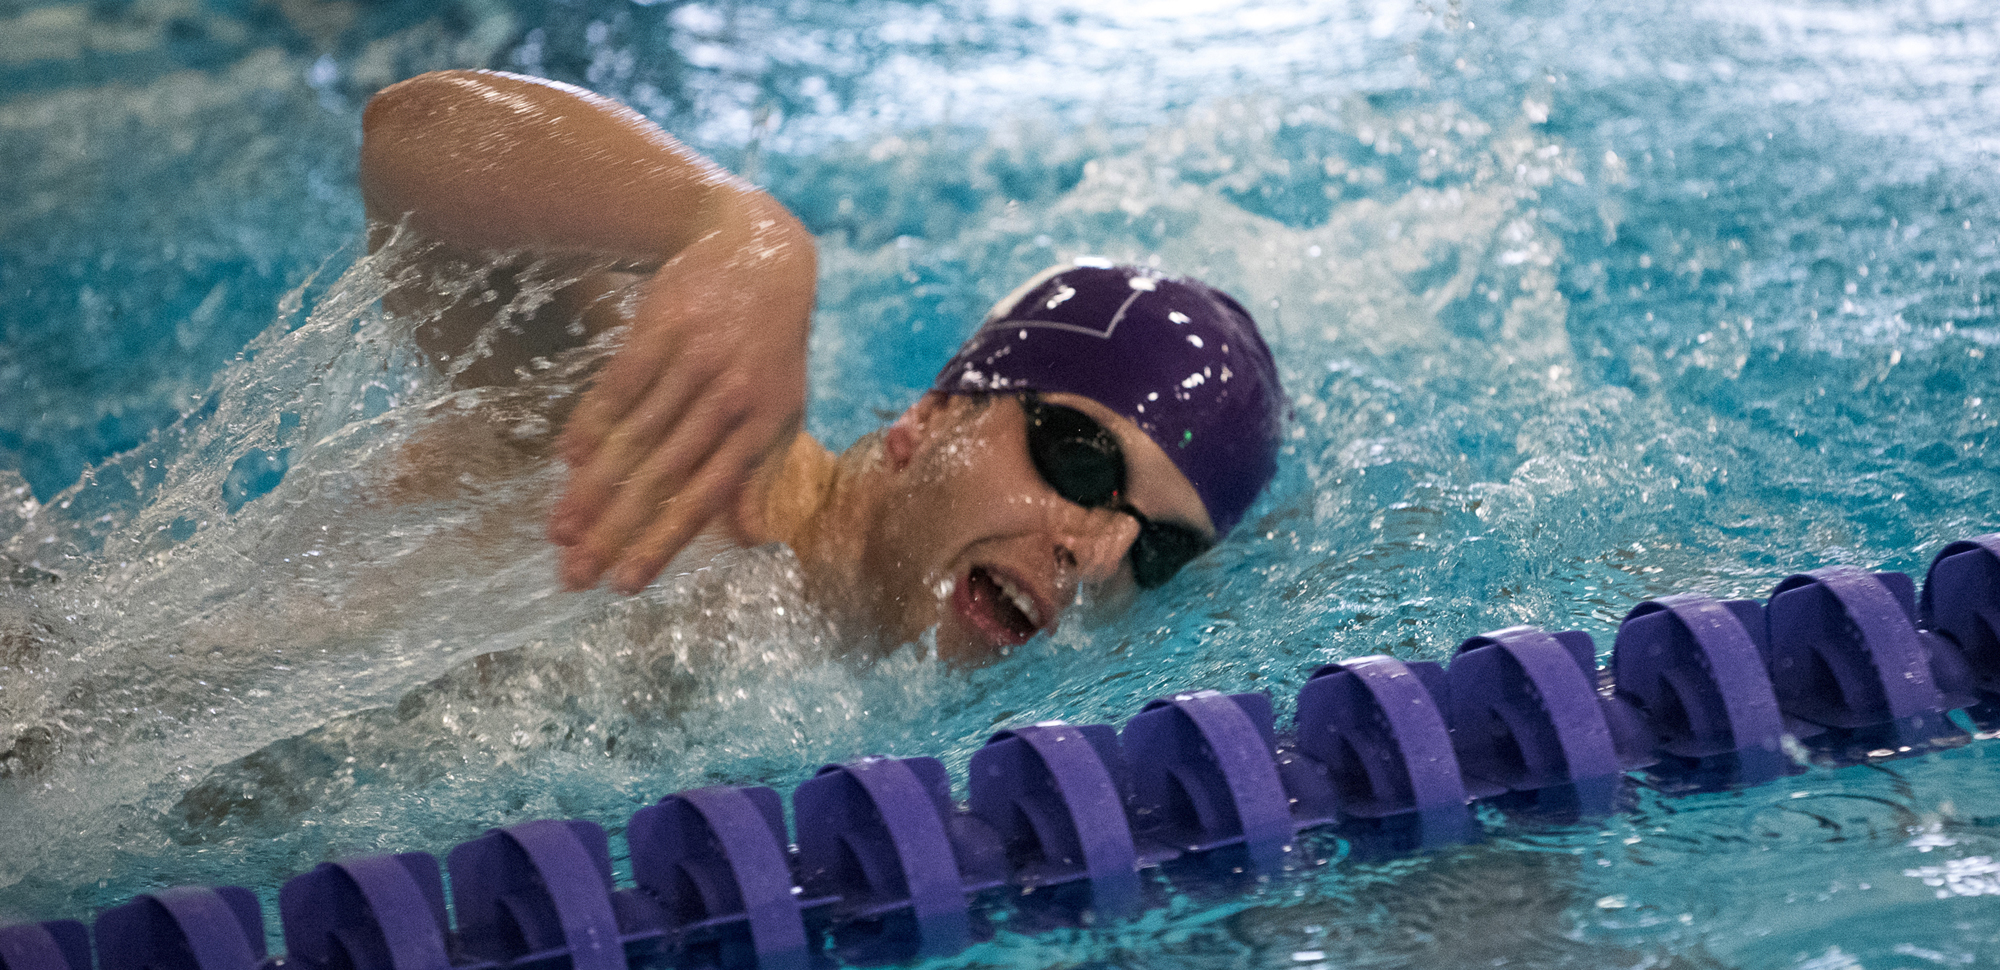 Dan Muenkel won the 200 backstroke and was second in the 100 backstroke on Saturday as the Royals defeated Juniata and Goucher.